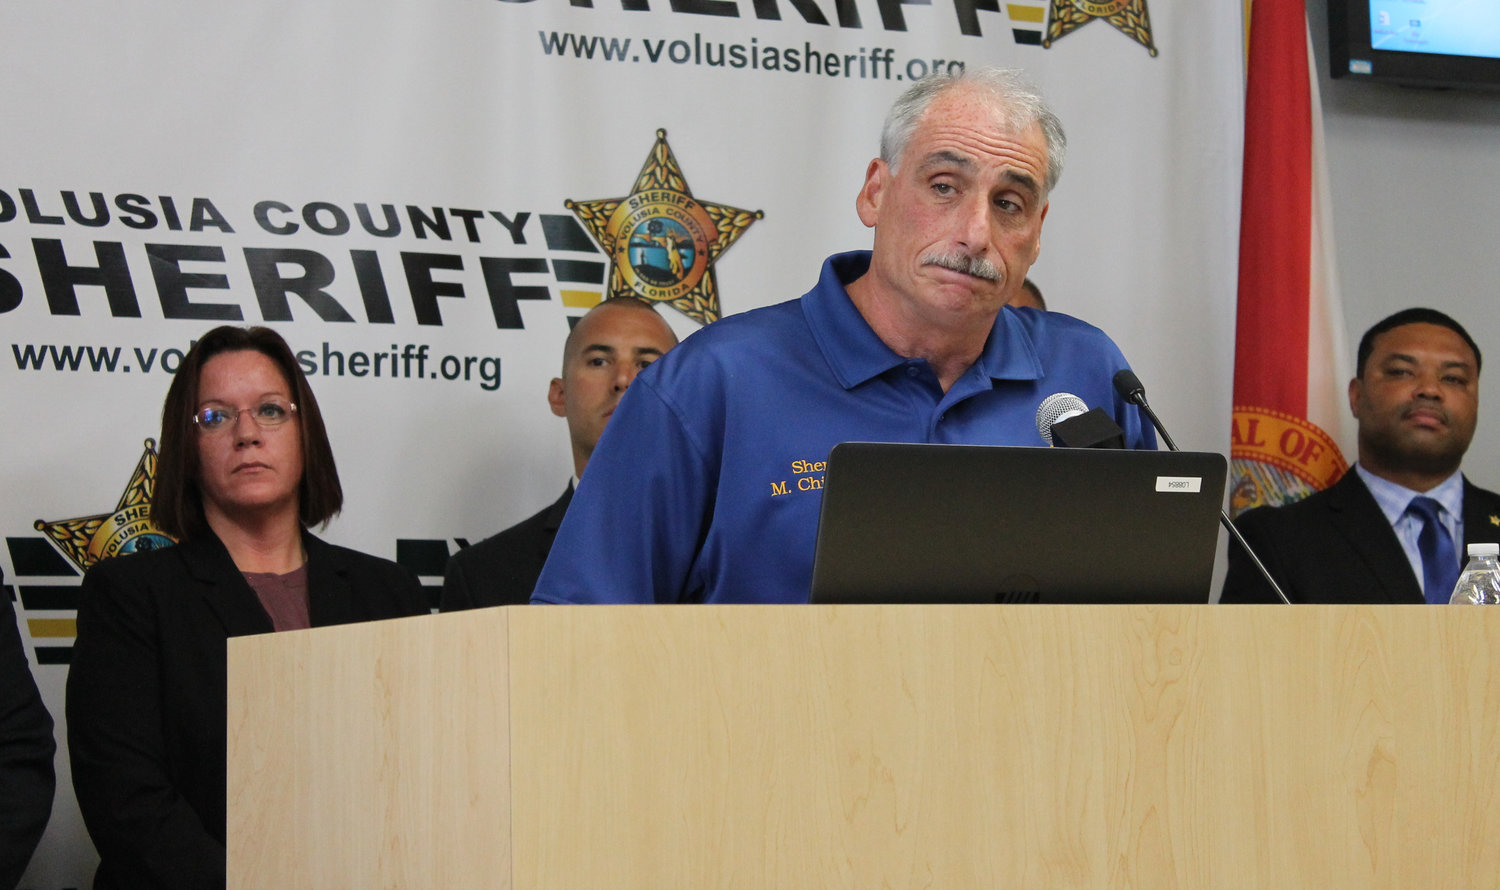 Volusia Sheriff Mike Chitwood